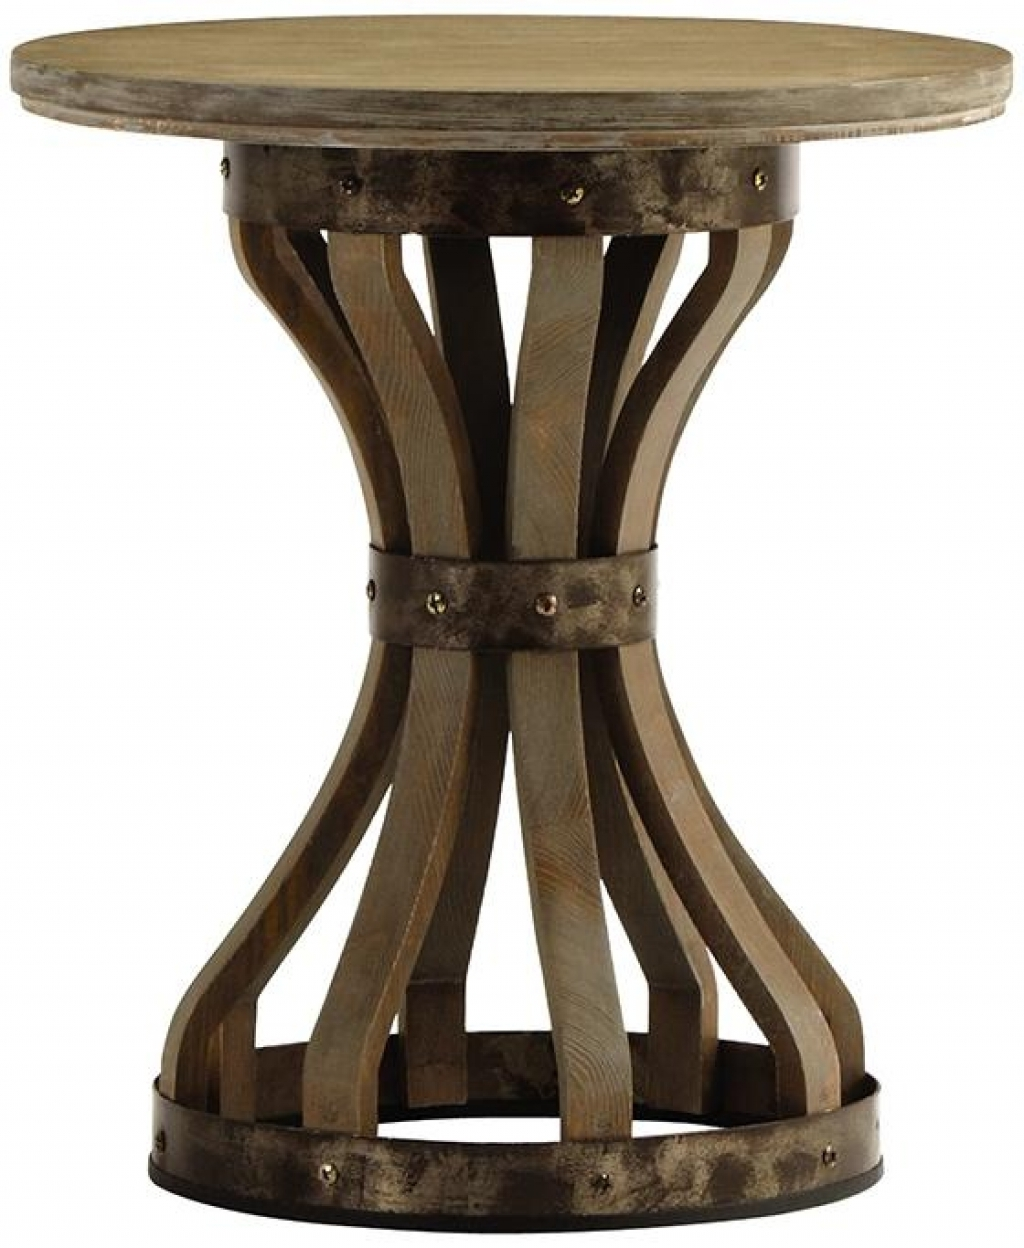 tall round accent table starrkingschool with drawer furniture toronto pier imports drum chair dale lighting lamps gray wash coffee coastal bathroom decor glass top outdoor ashley